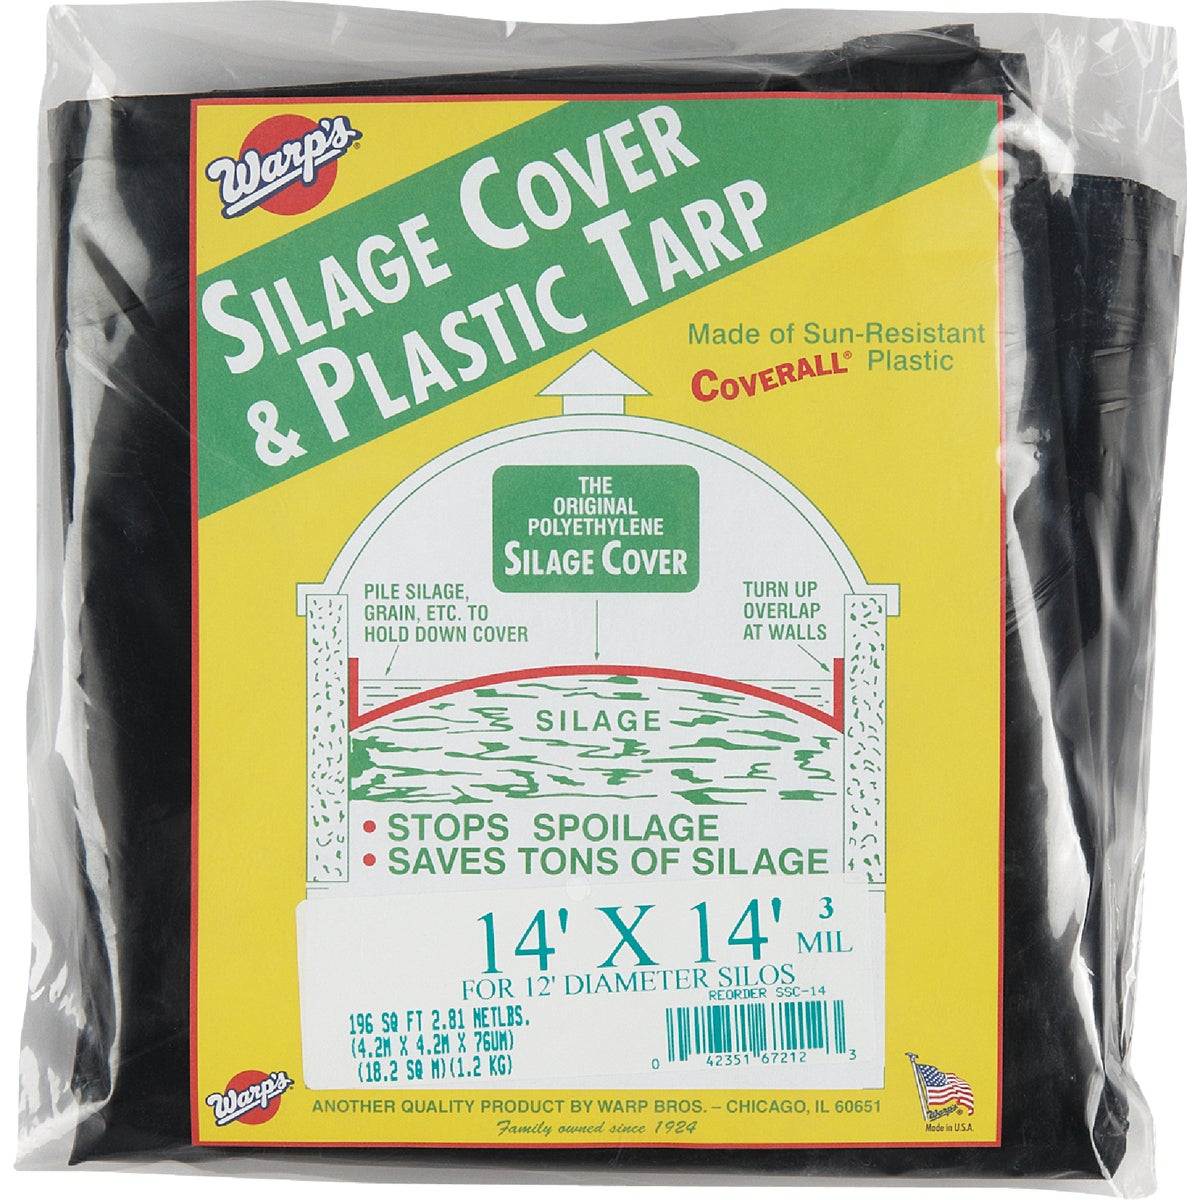 14X14 SILAGE COVER